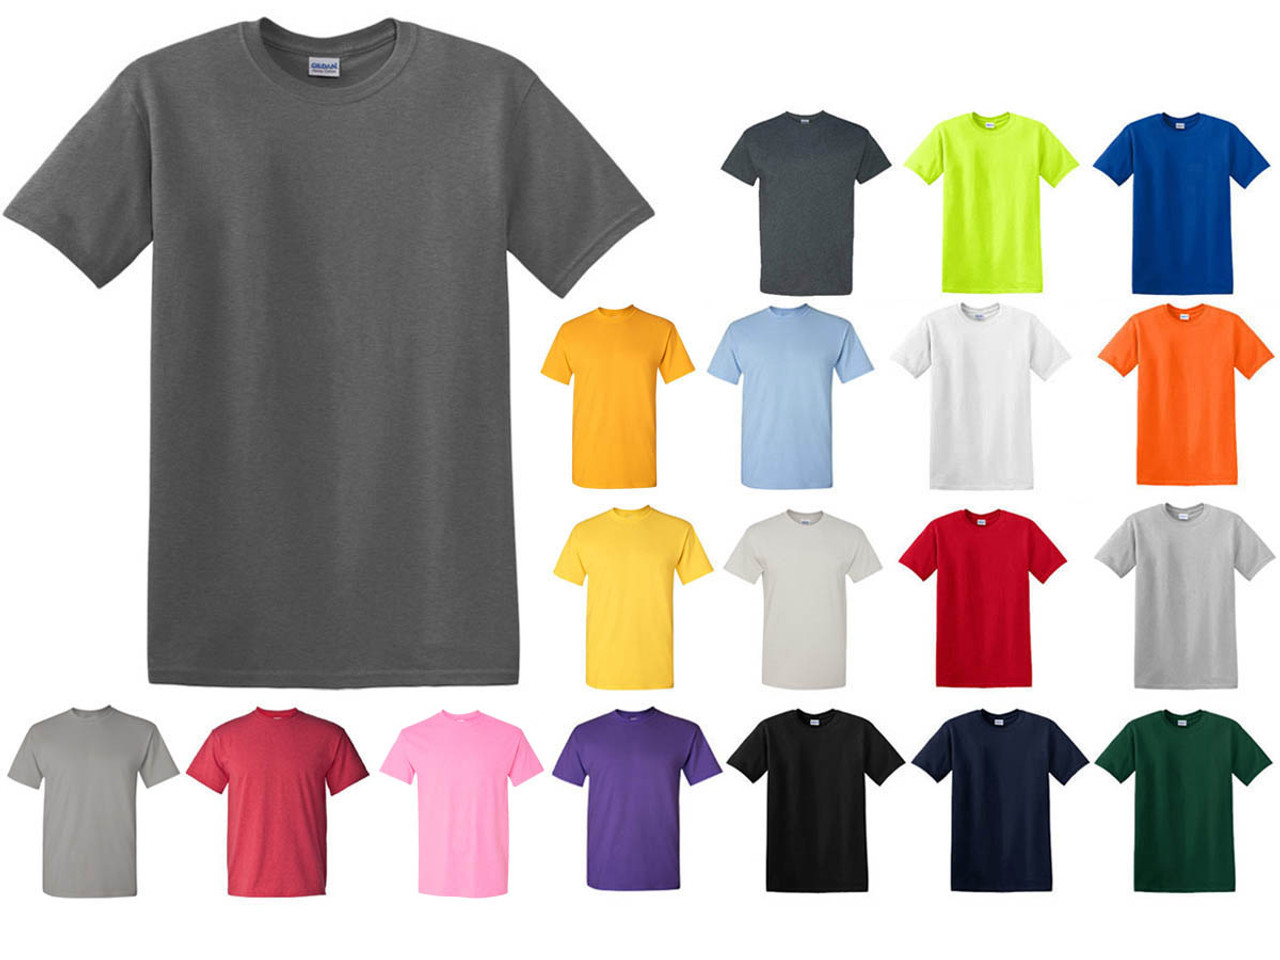 bulk t shirts gildan cotton t shirt supplier